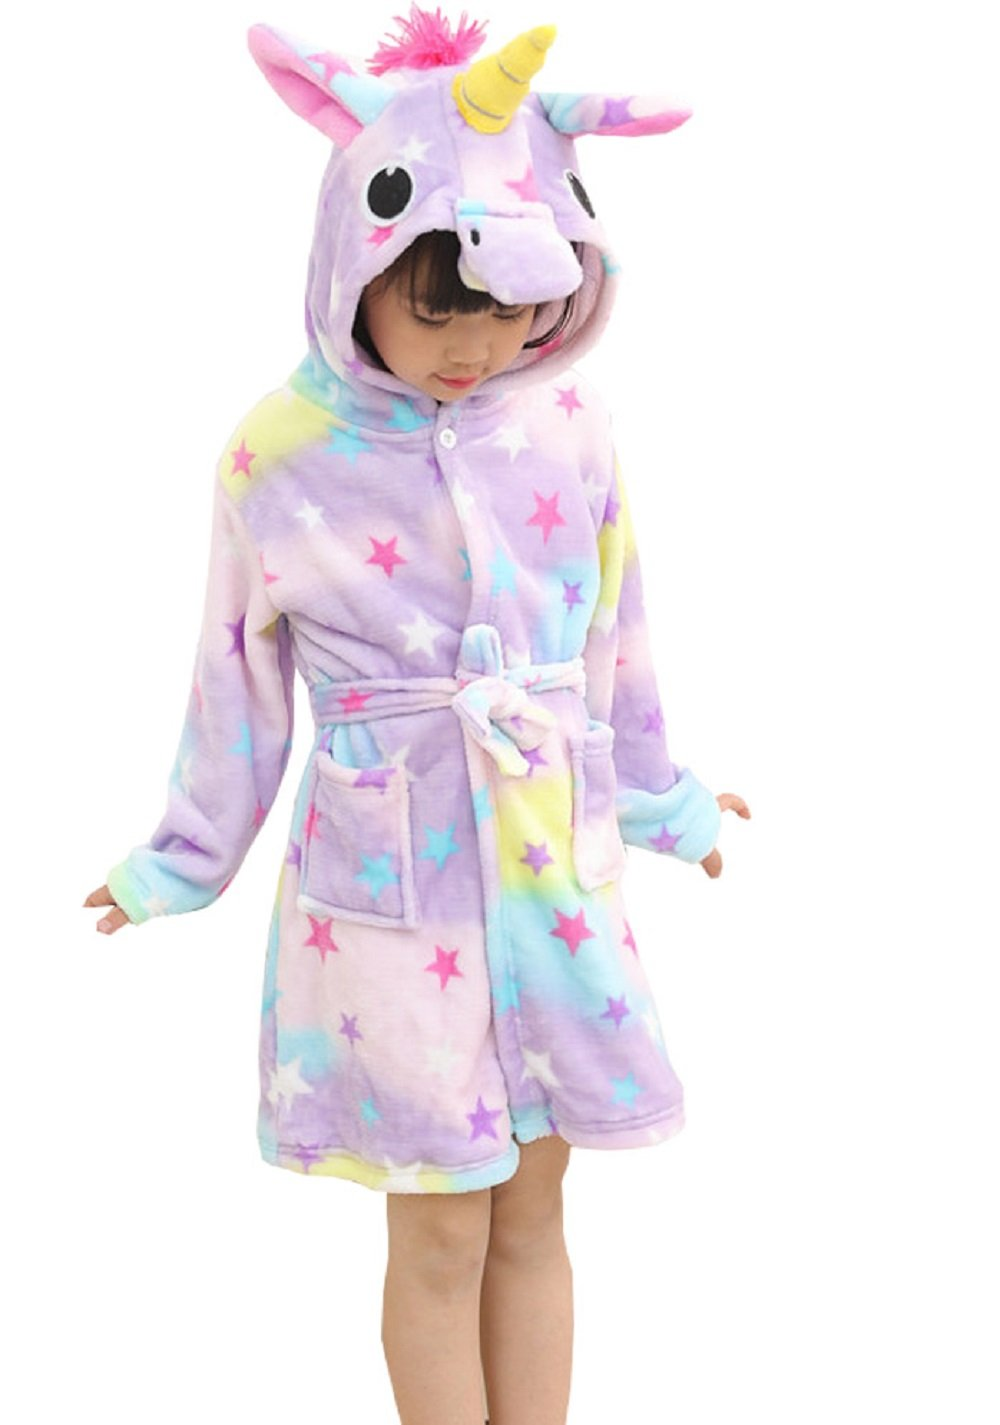 Hotmall Kids Unicorn Bathrobe Hooded Animal Flannel Sleepwear Dressing Gown Children Unisex Star Rainbow Cosplay Costumes Pyjamas Soft Warm Nightgown Robe